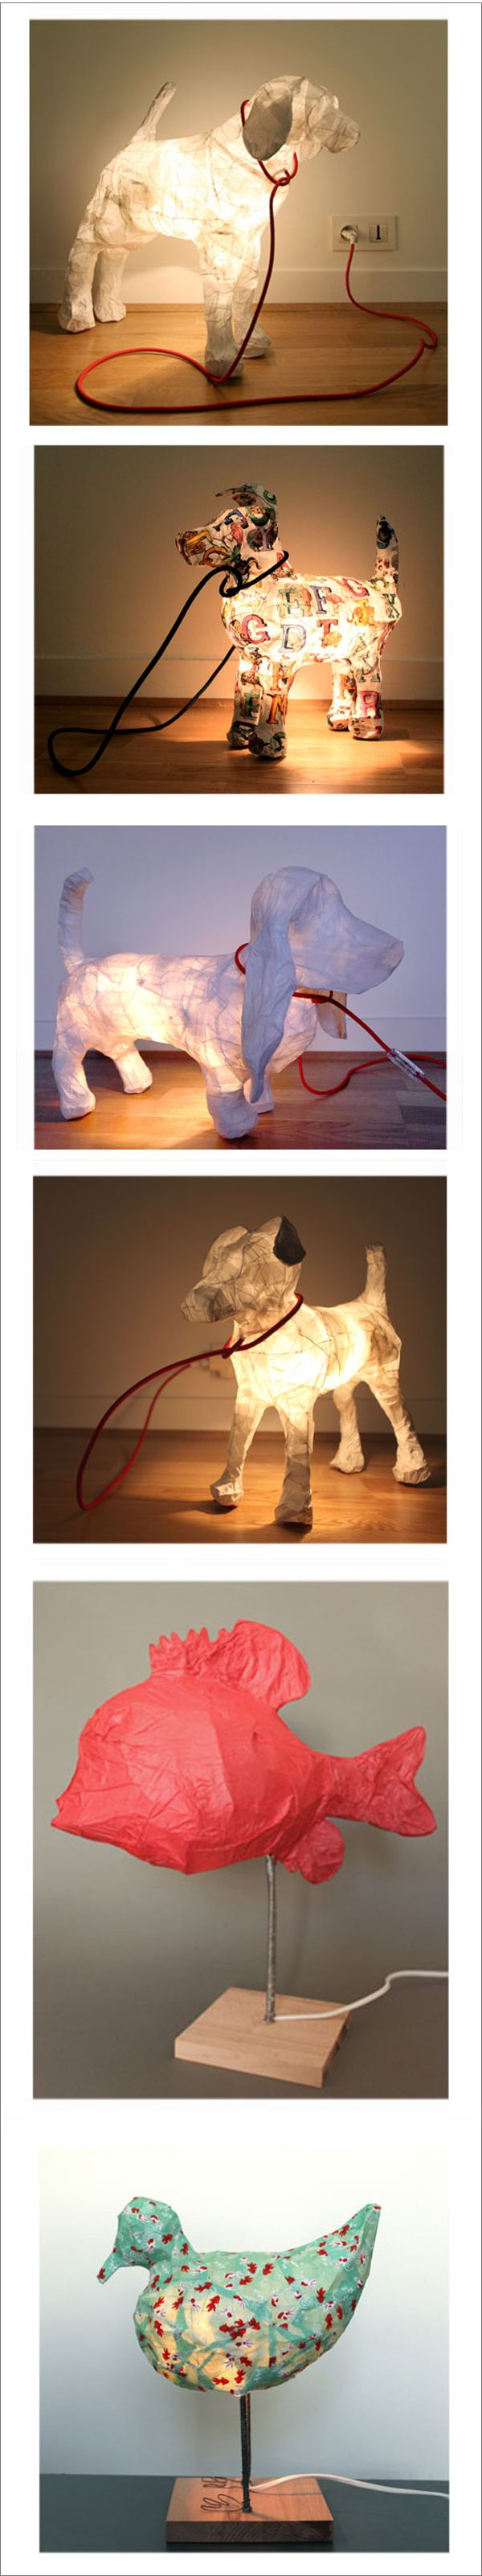 animal-shaped paper lamps - These would be a cool option for a 3D project